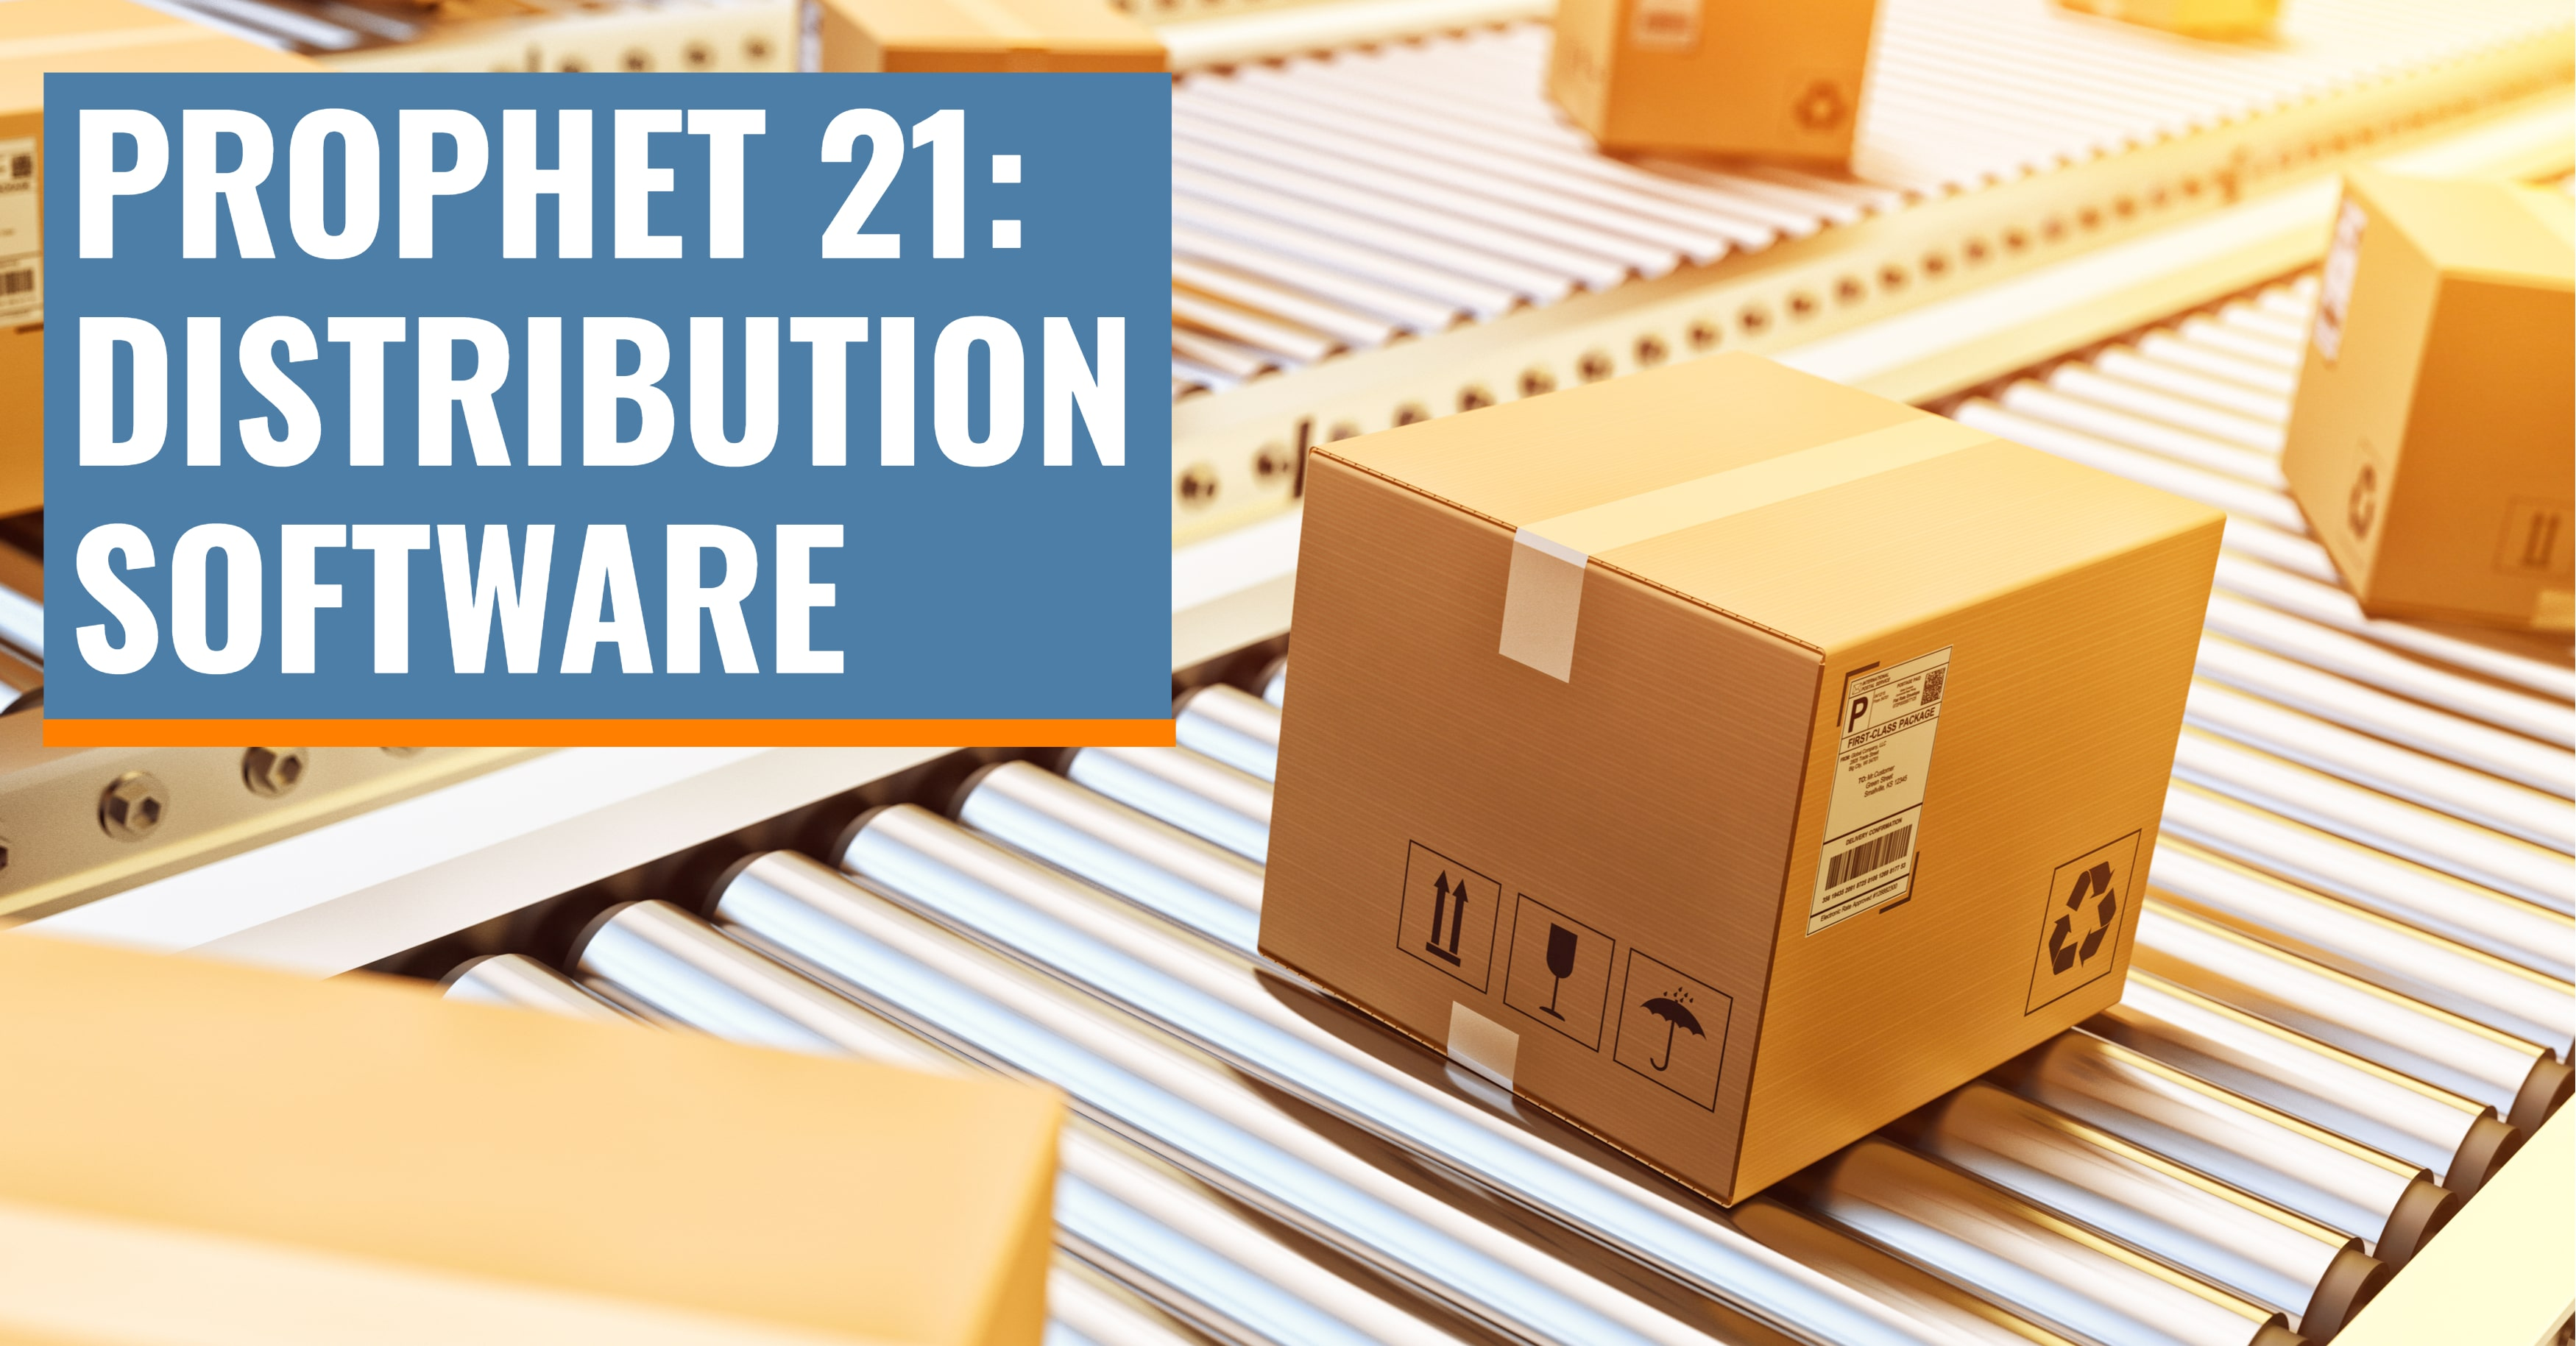 Revamp Your Distribution Business with Prophet 21